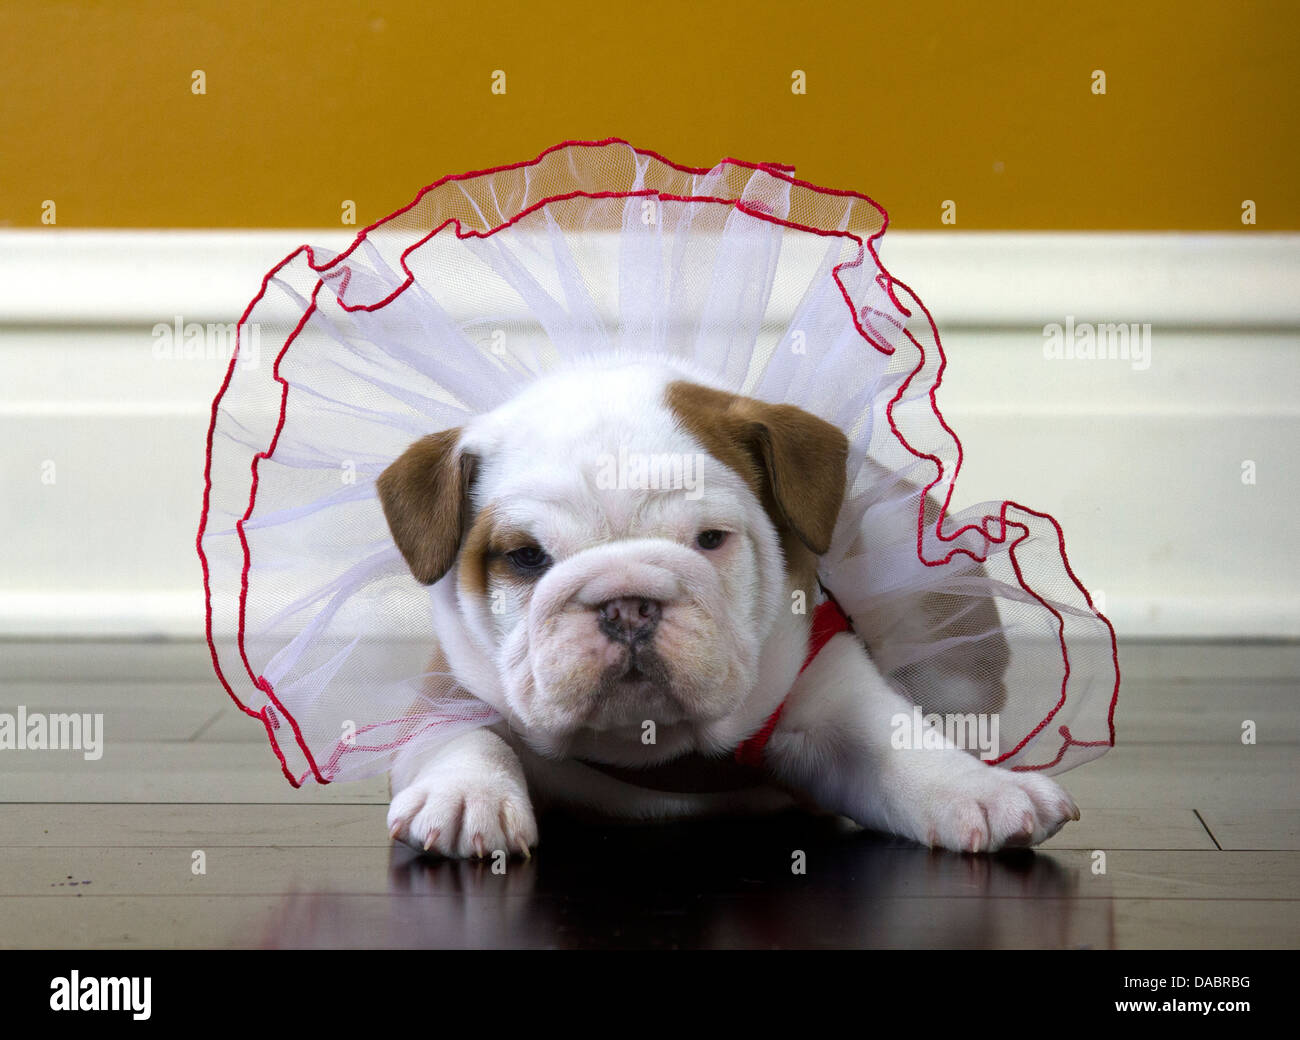 Puppy Fat Stock Photos Puppy Fat Stock Images Alamy